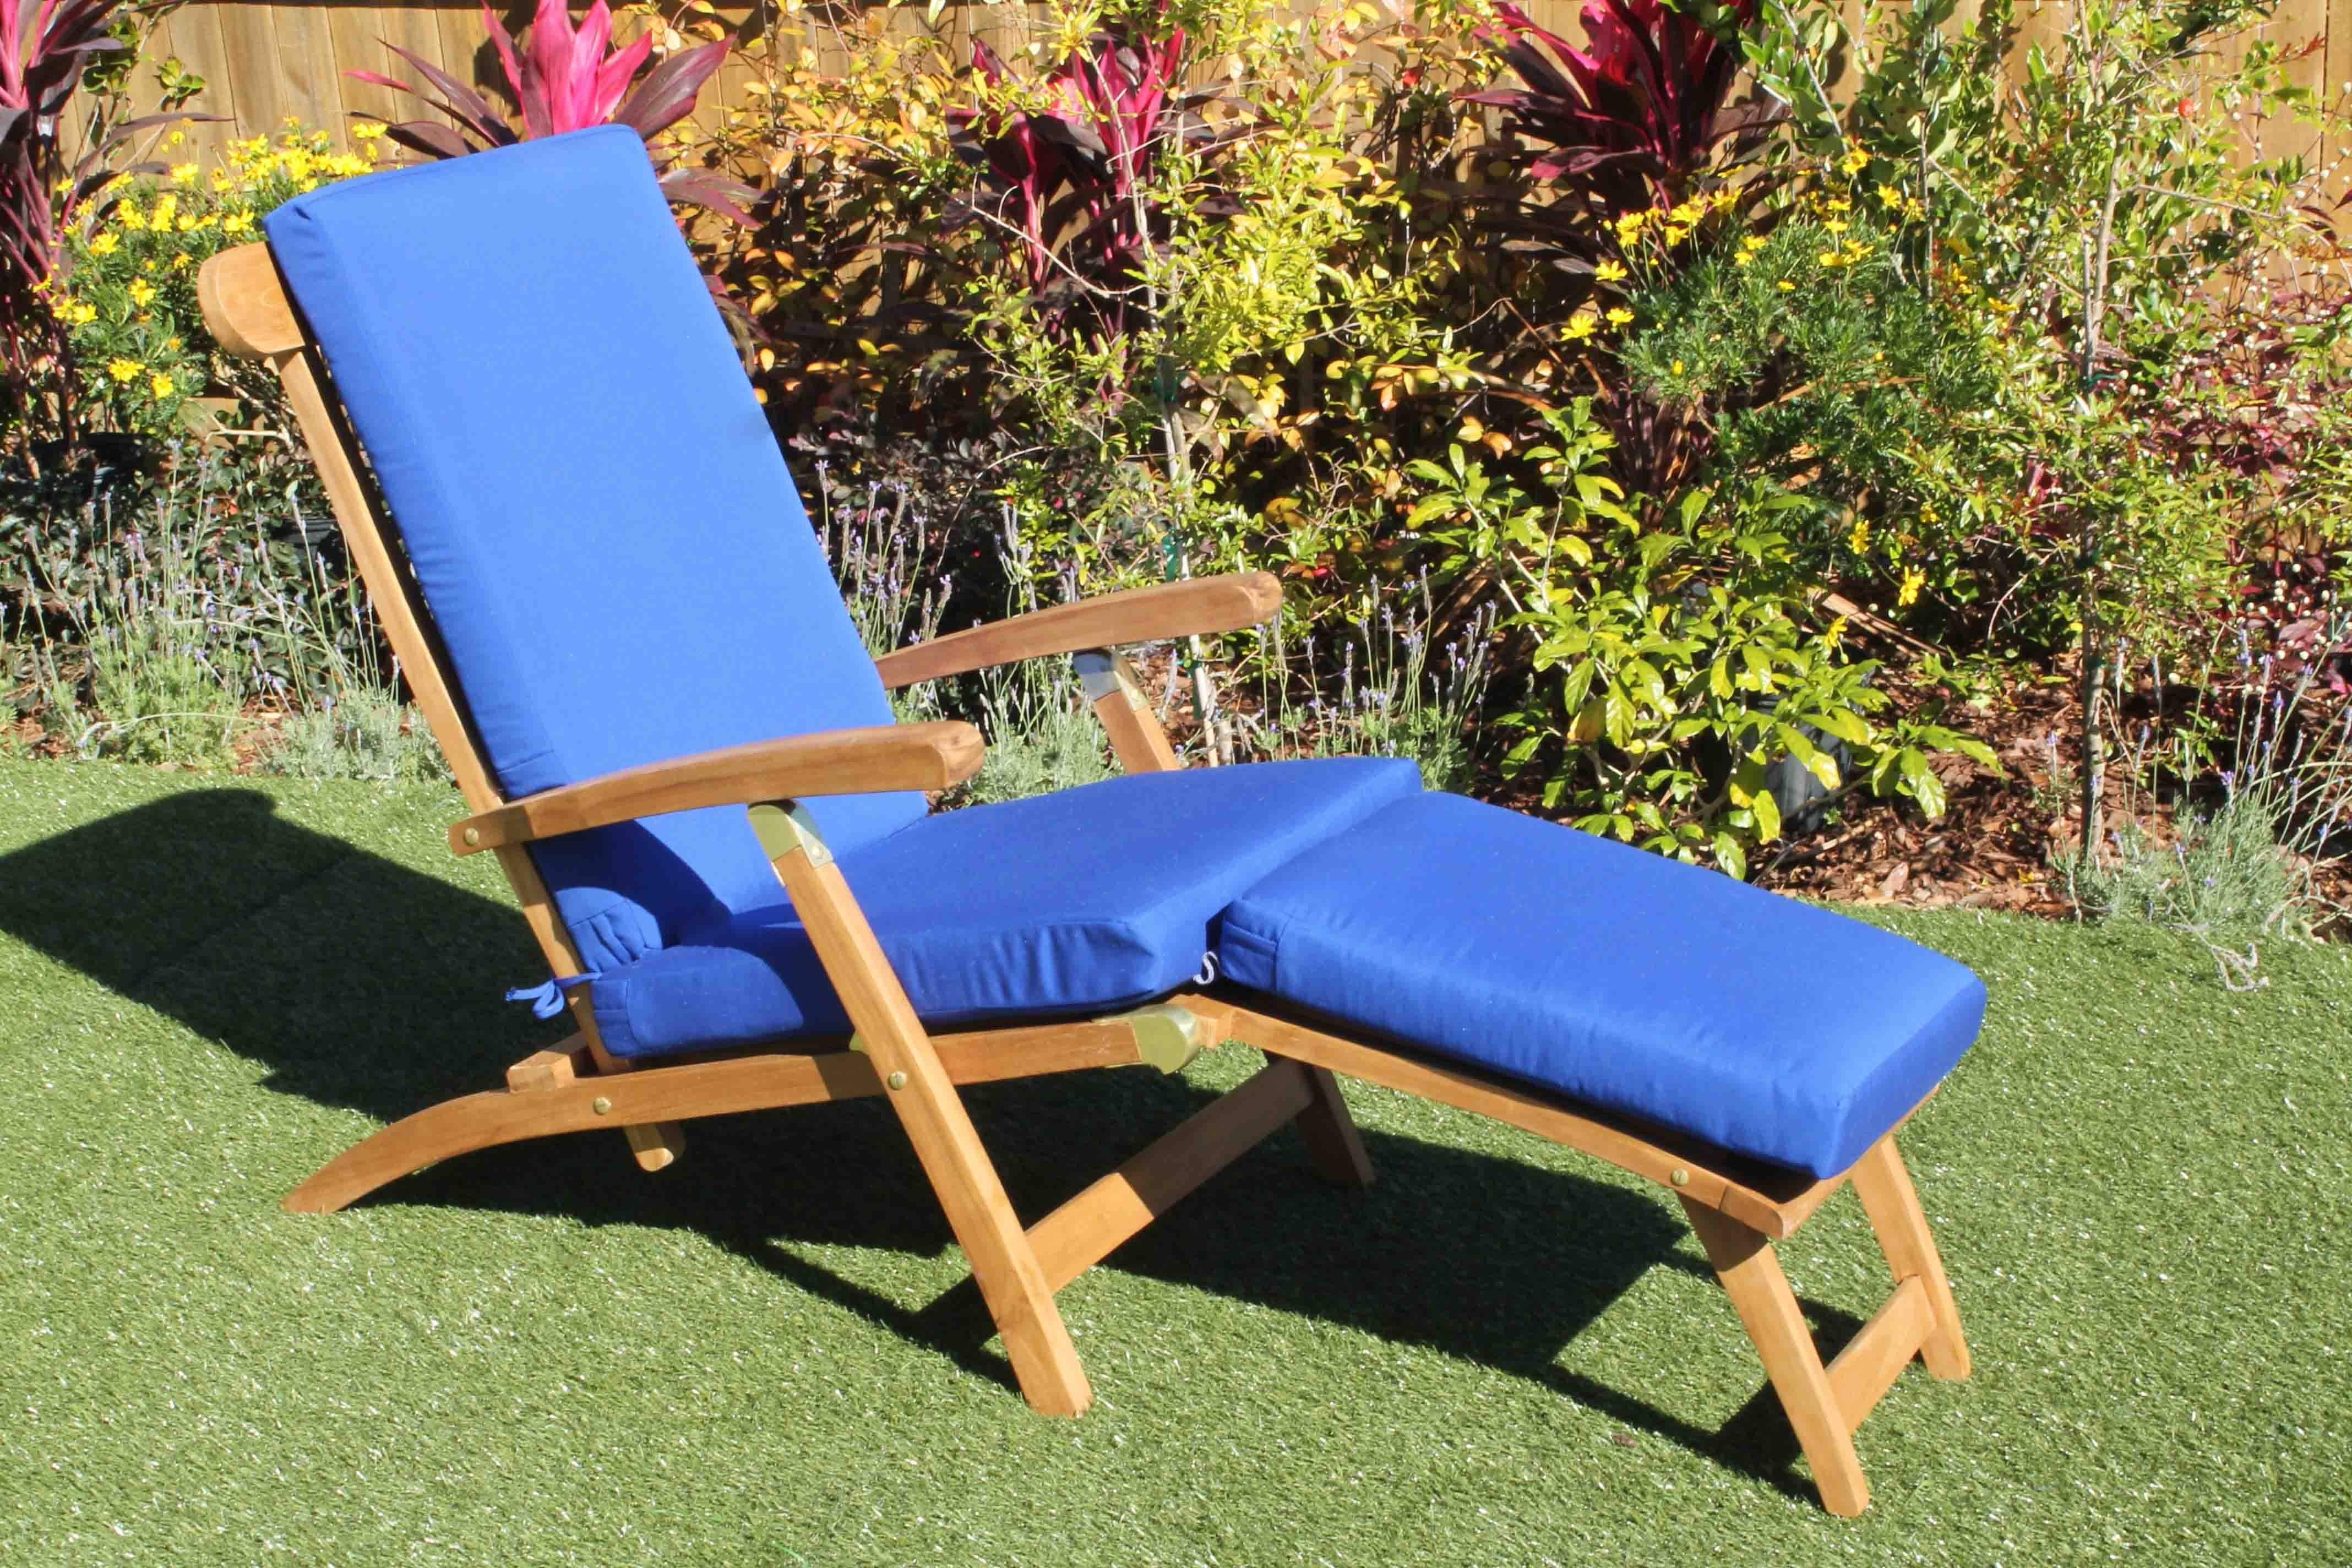 Sunbrella Chaise Cushions Within Preferred Chaise Lounges (View 12 of 15)